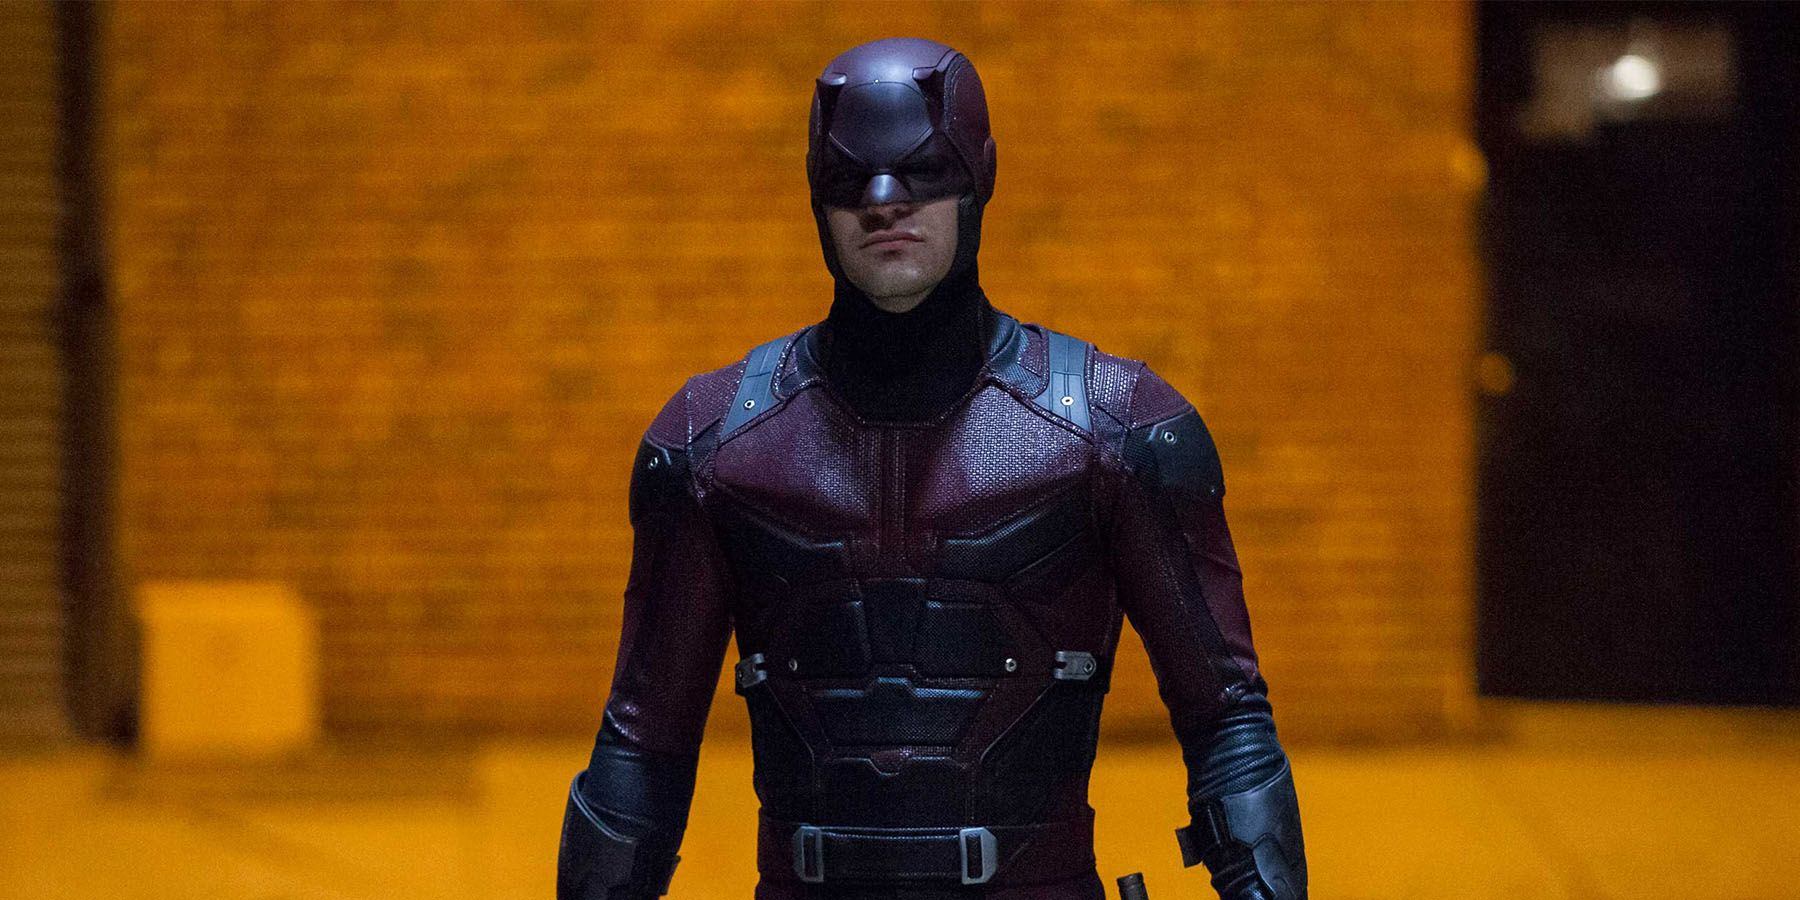 Netflix Daredevil Creator Signs Overall Deal with Disney TV